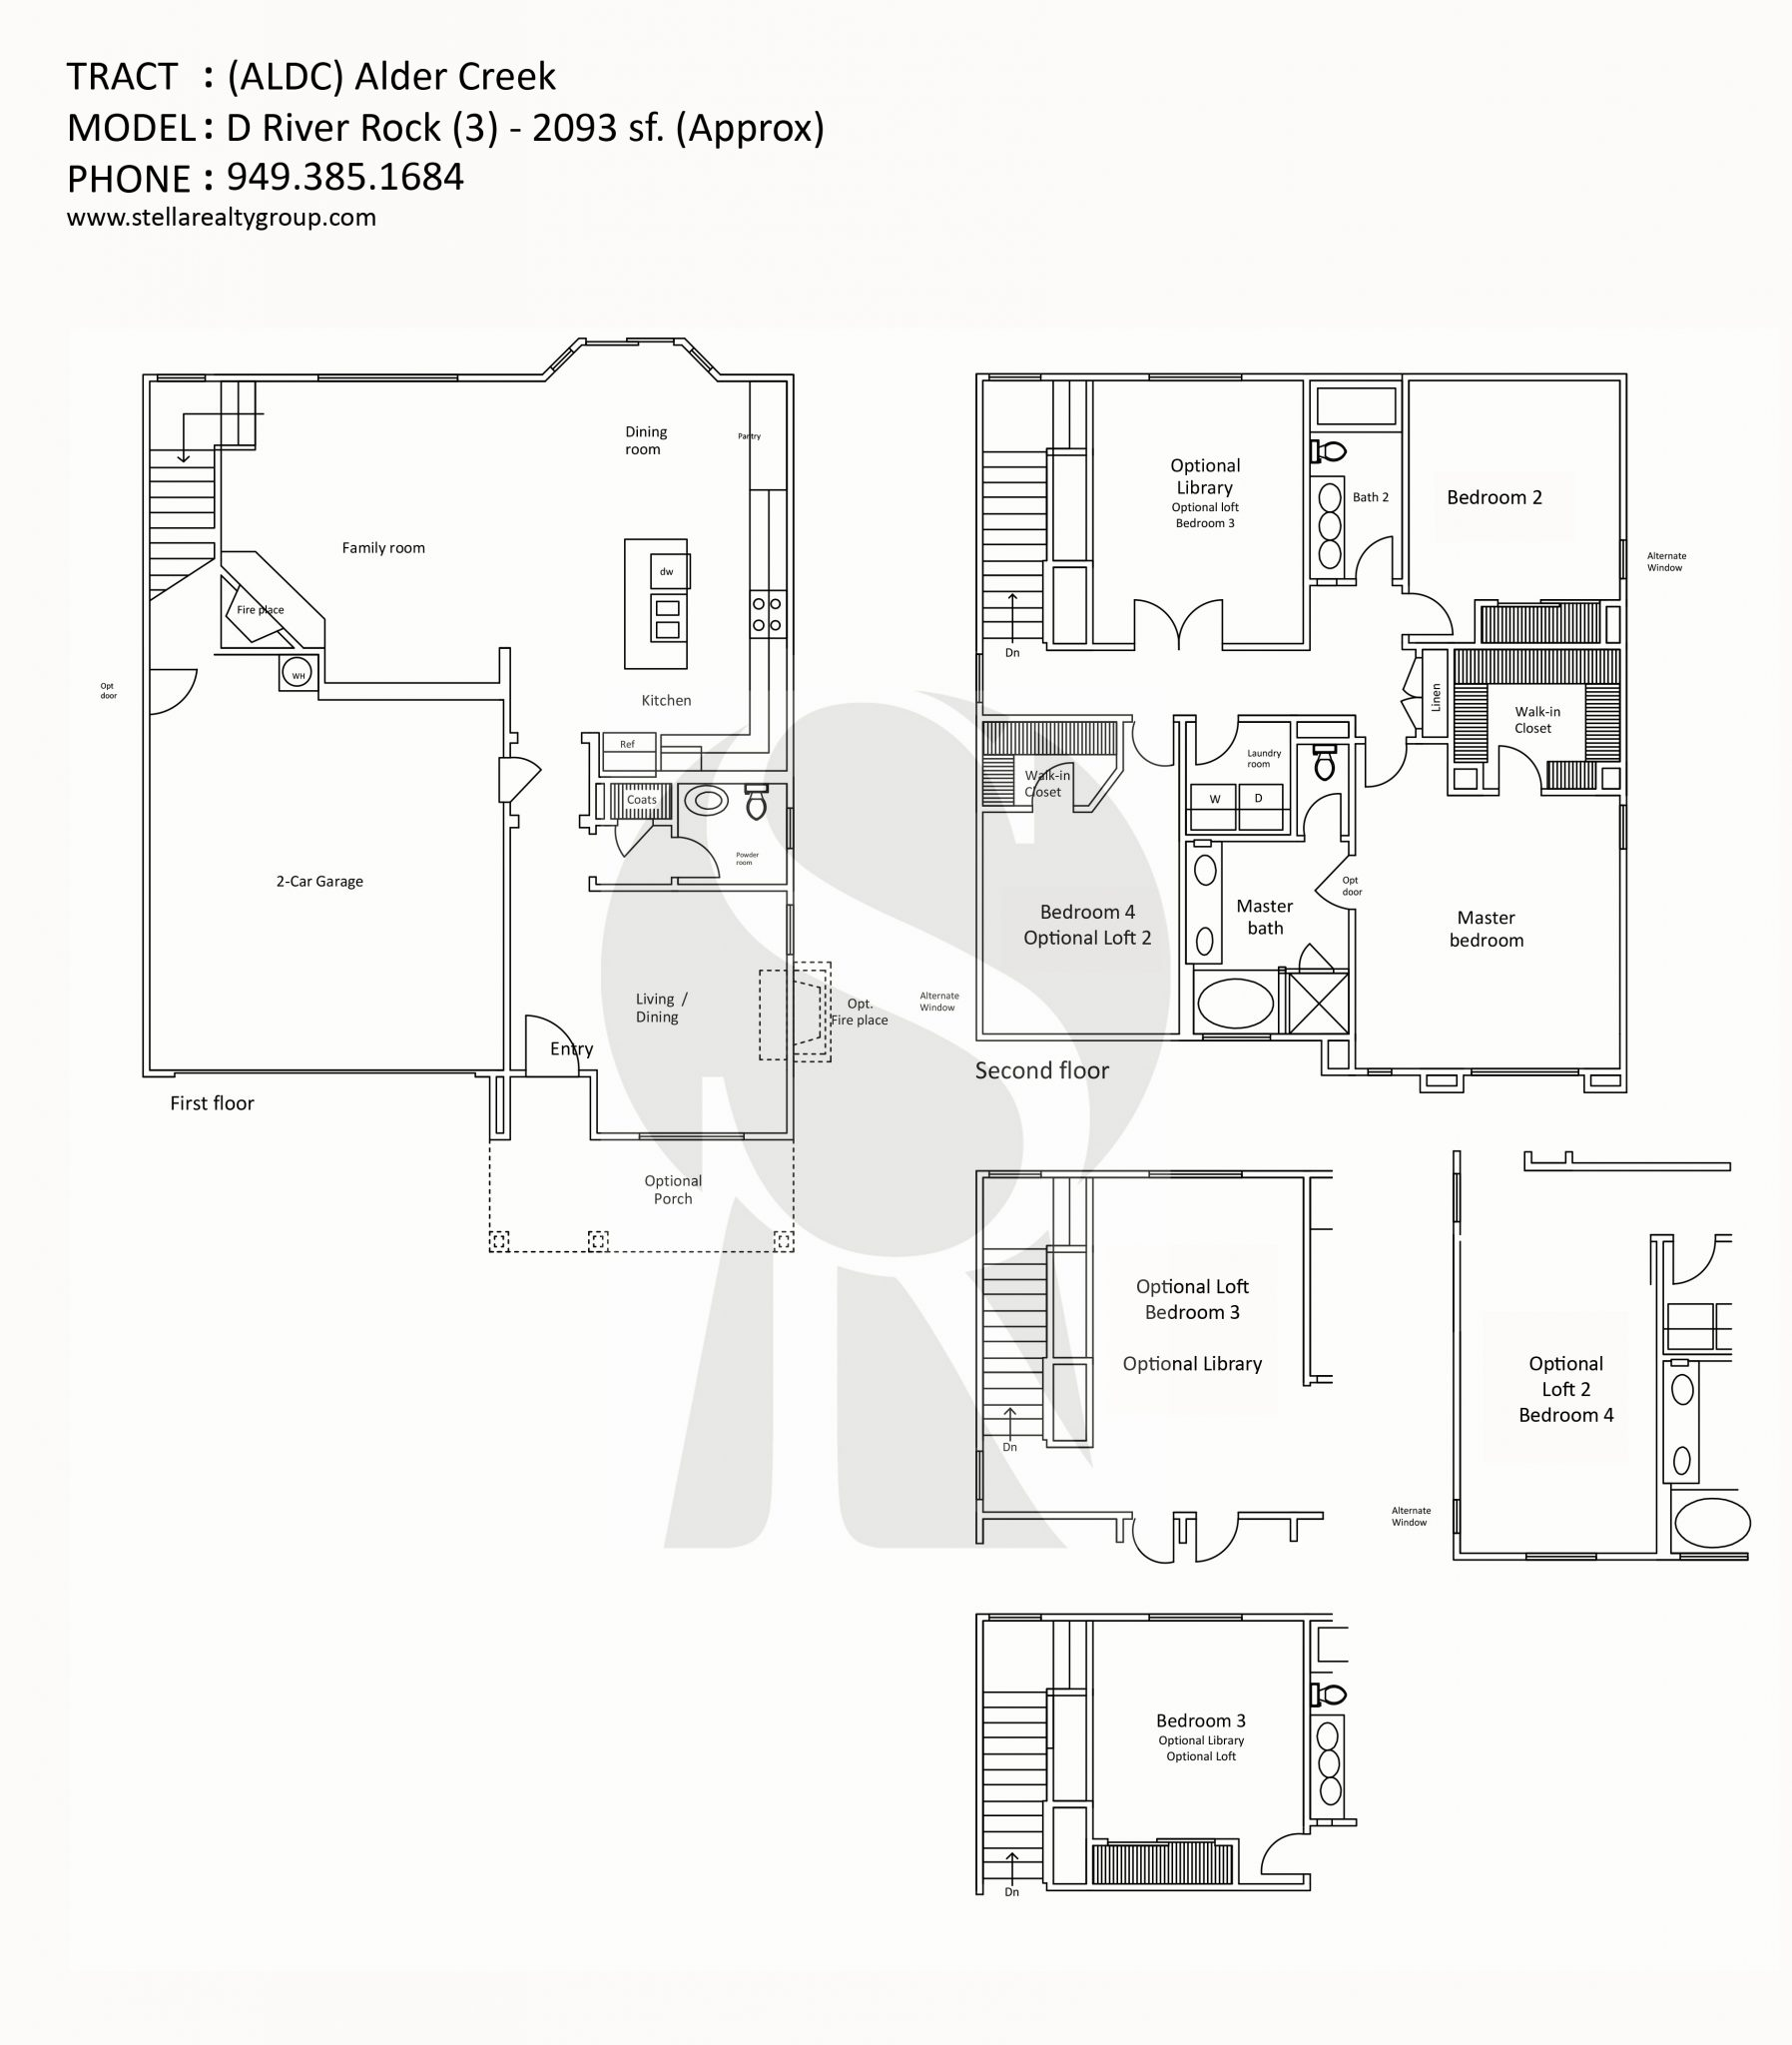 alder creek d river rock 3 2093 sf - Deefield Park Homes Floor Plans